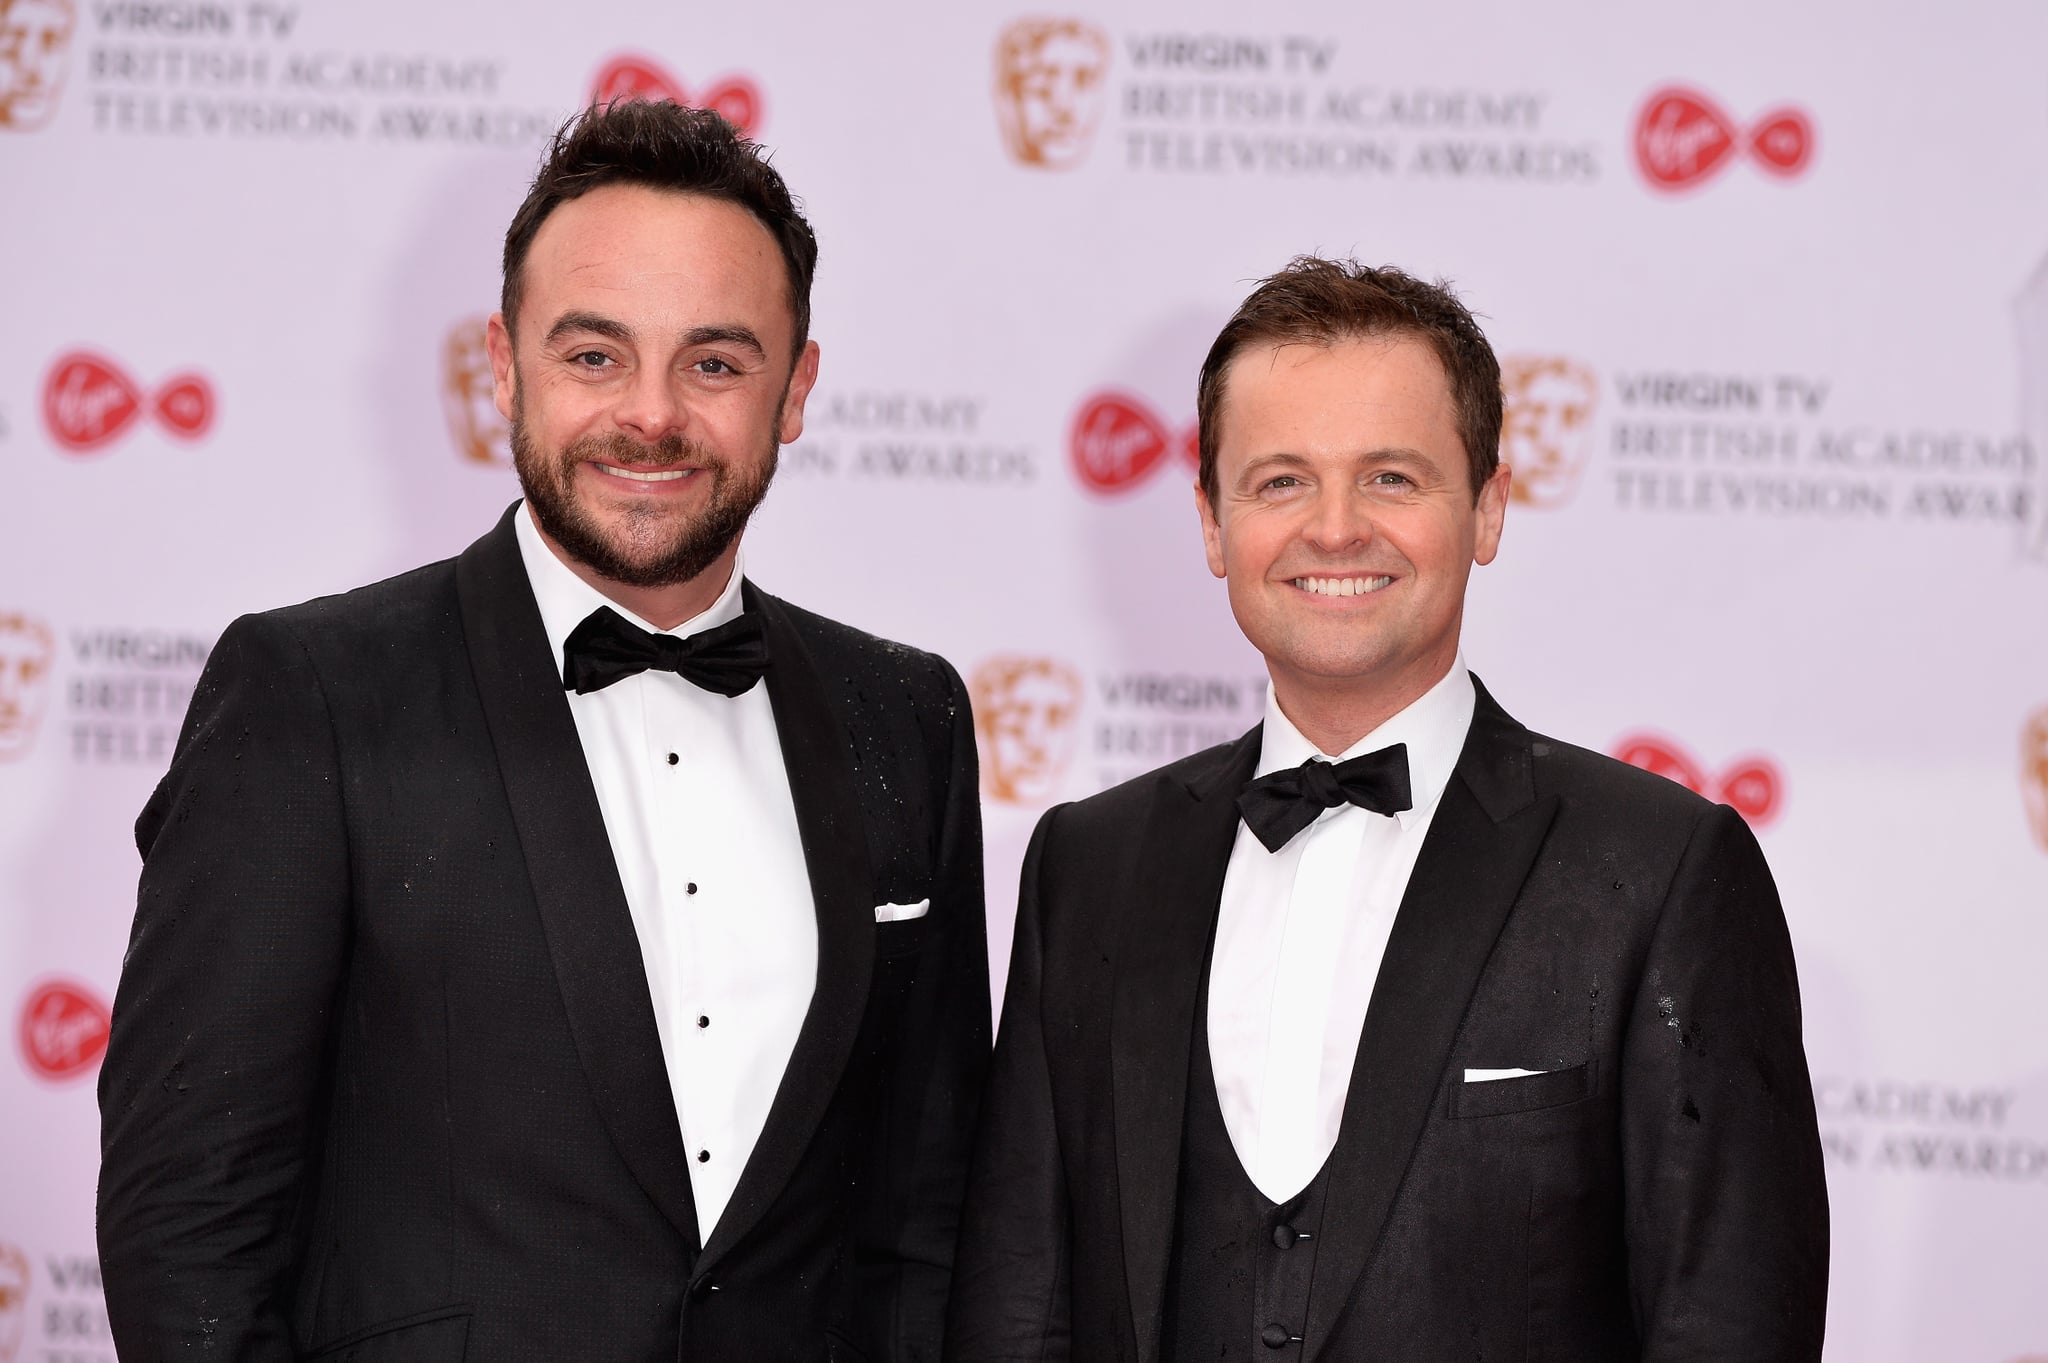 LONDON, ENGLAND - MAY 14:  Anthony McPartlin (L) and Declan Donnelly aka Ant and Dec attend the Virgin TV BAFTA Television Awards at The Royal Festival Hall on May 14, 2017 in London, England.  (Photo by Jeff Spicer/Getty Images)